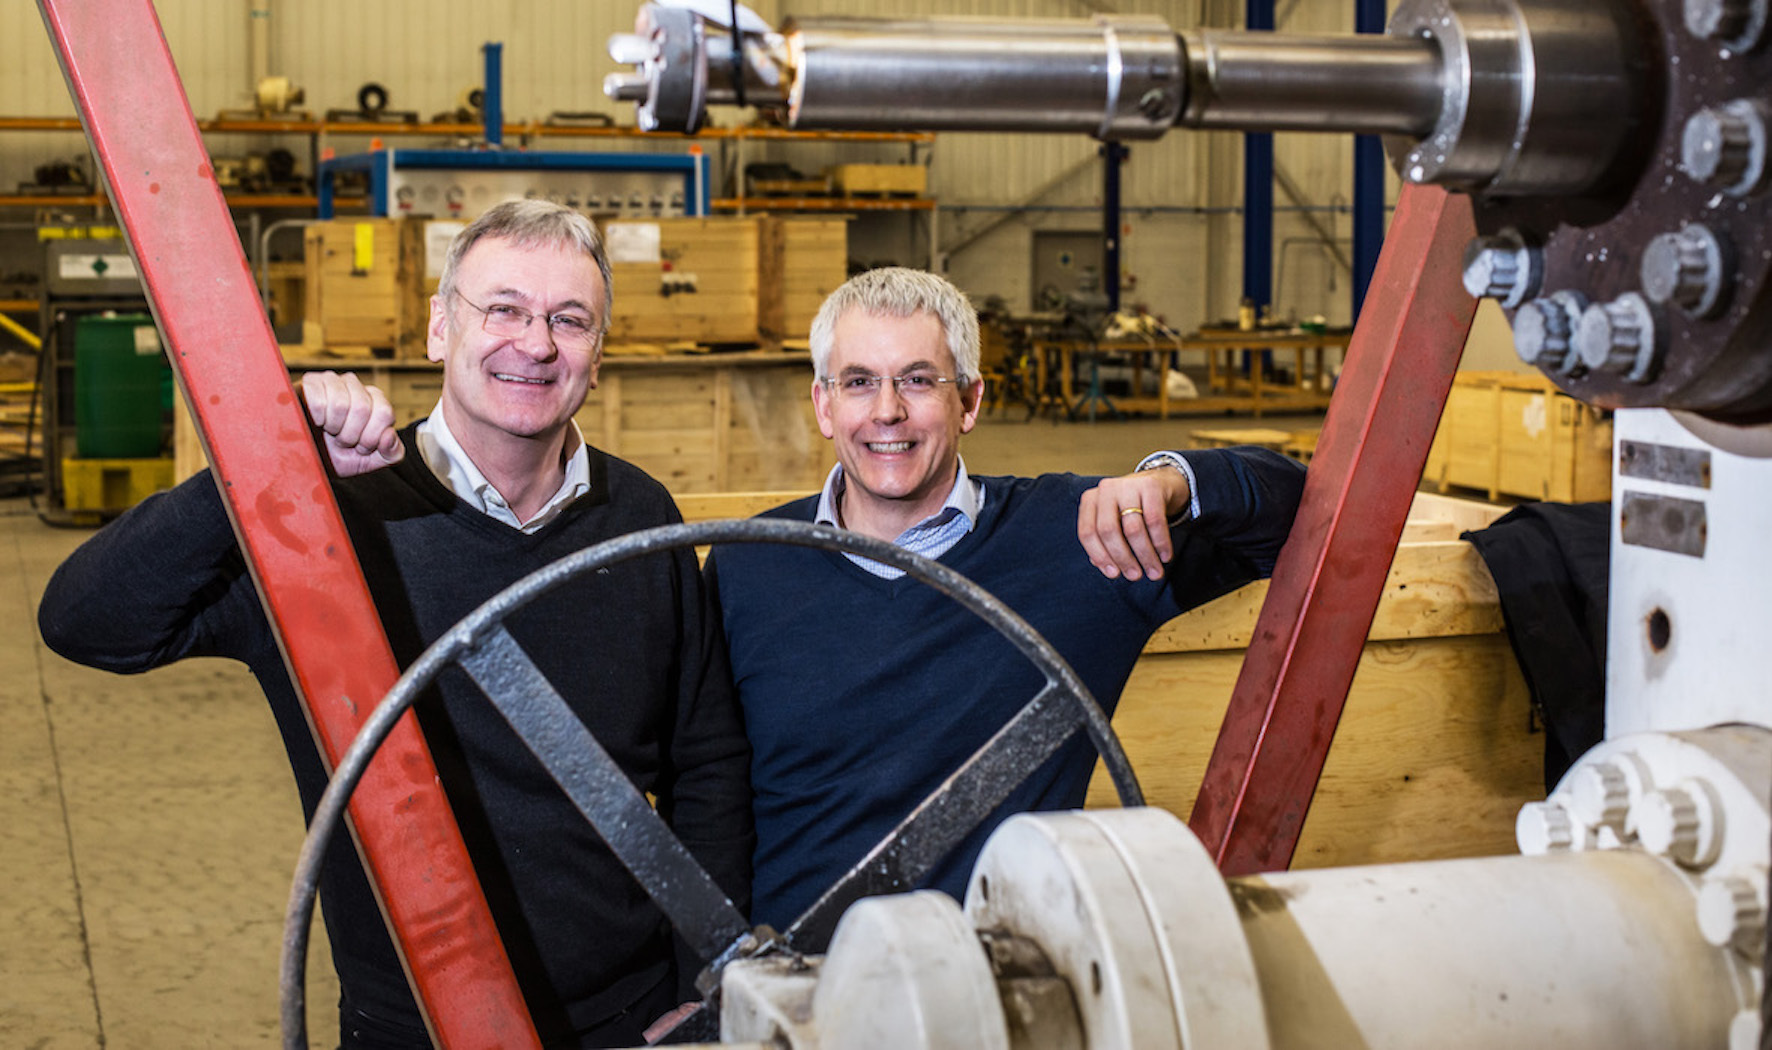 Frontrow chairman Graeme Coutts (left) with BGF investor Mike Sibson